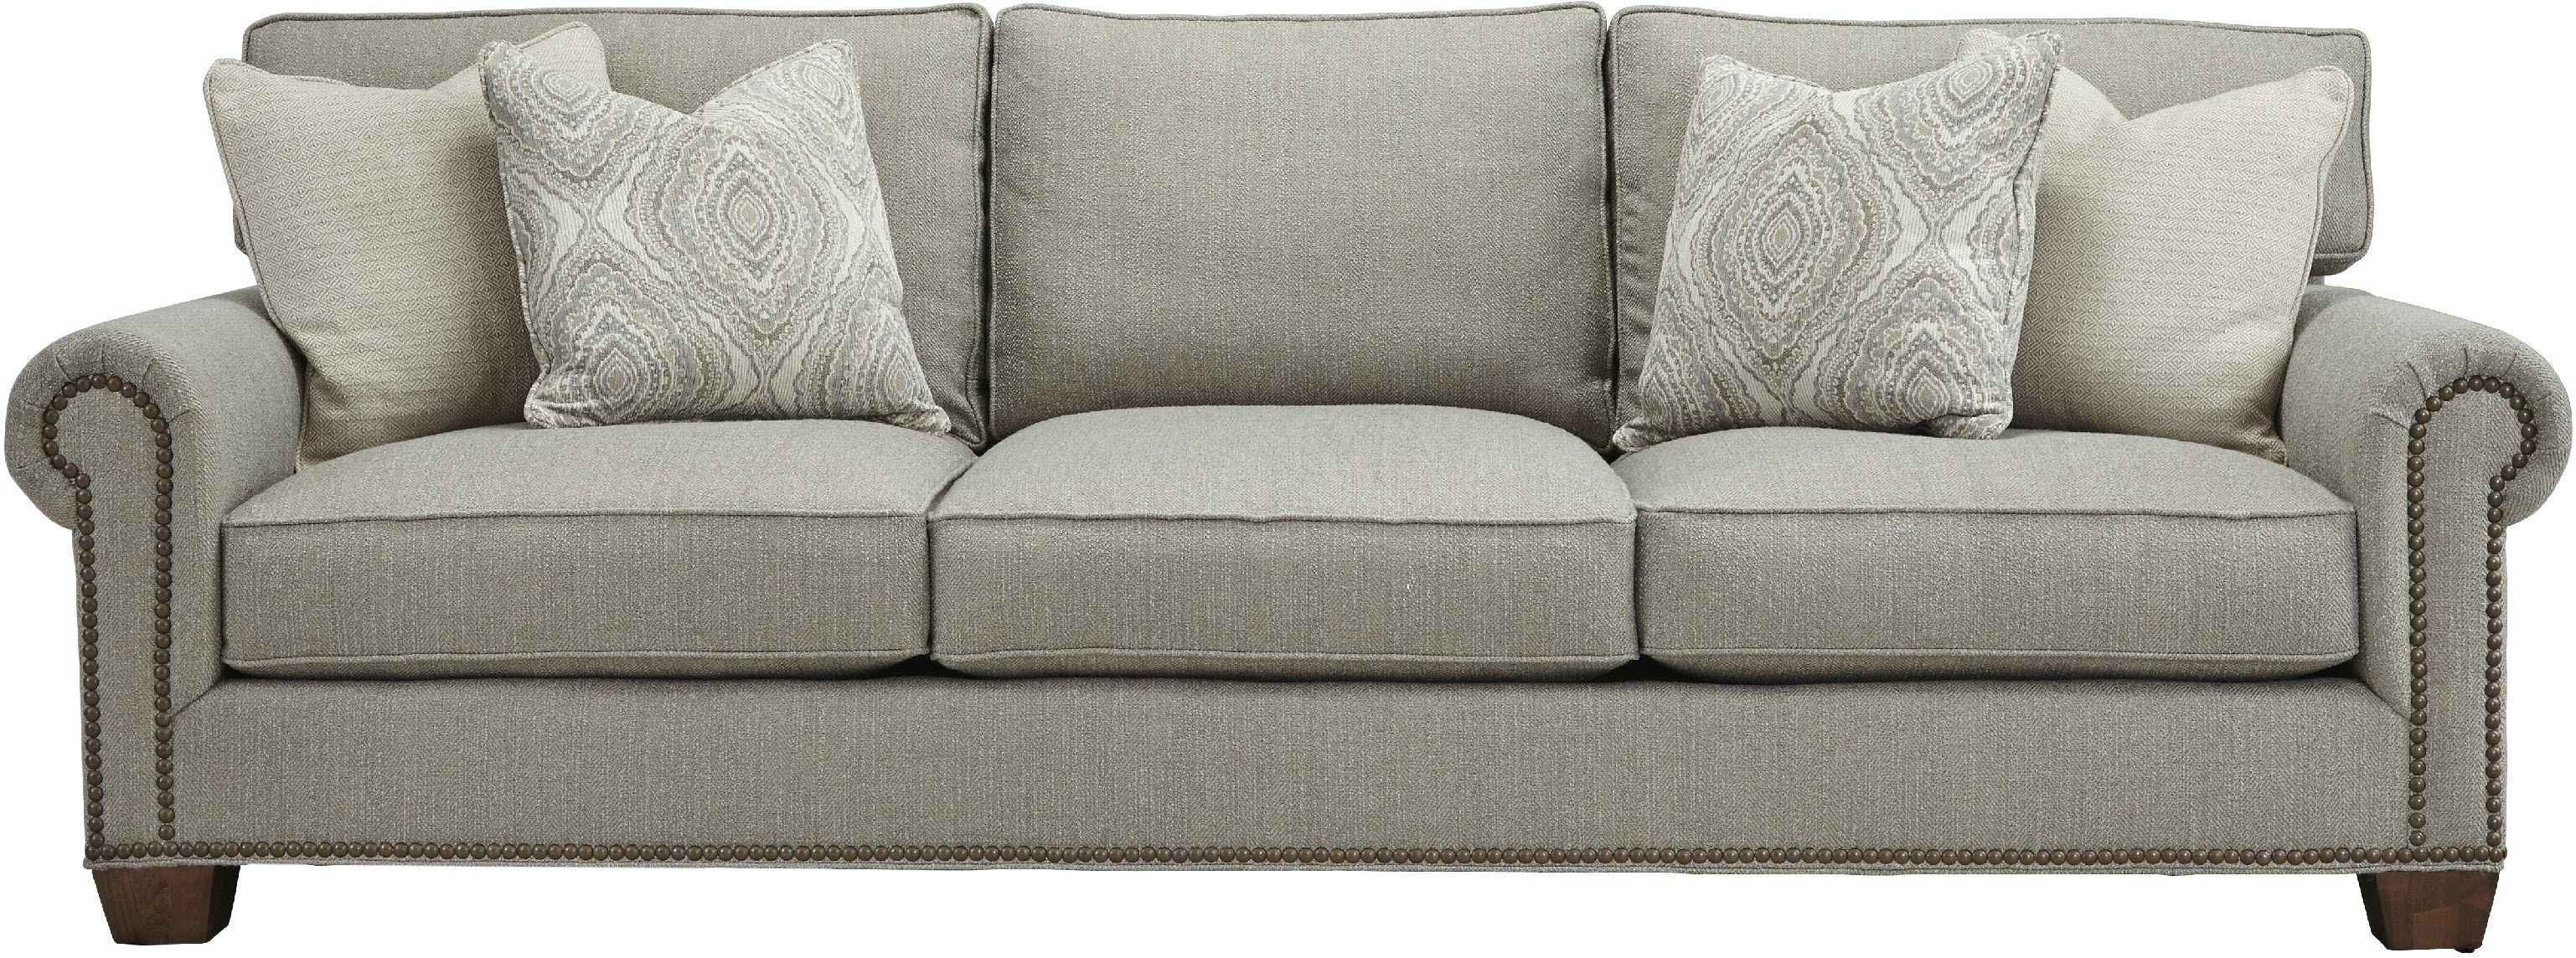 Southern Furniture Living Room Burt Sofa 8ft Whitley